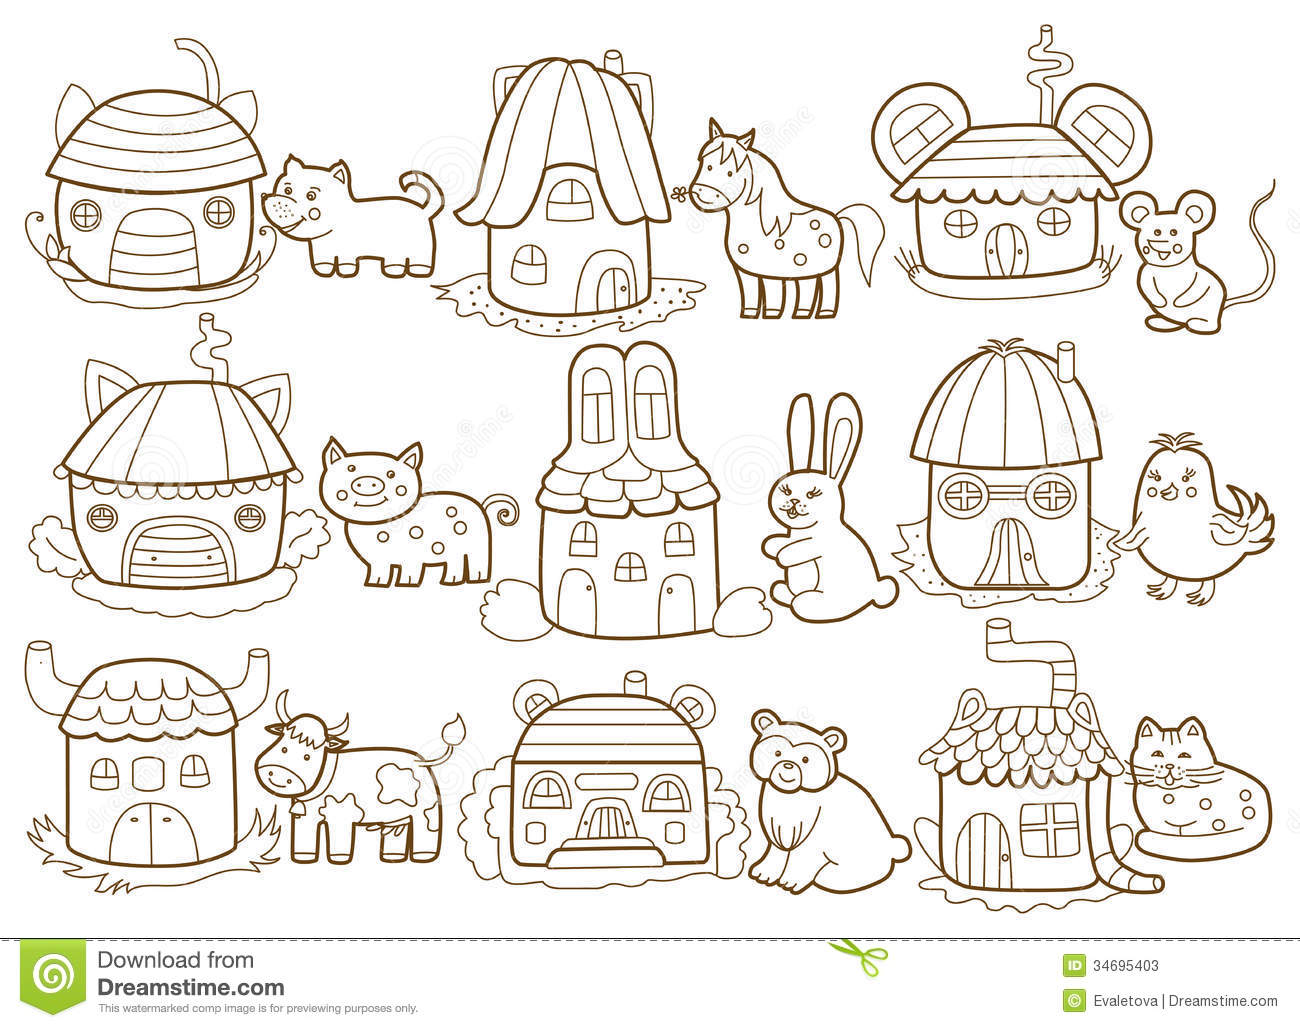 Coloring Pages Of Animals And Their Homes : Free coloring pages of homes animals